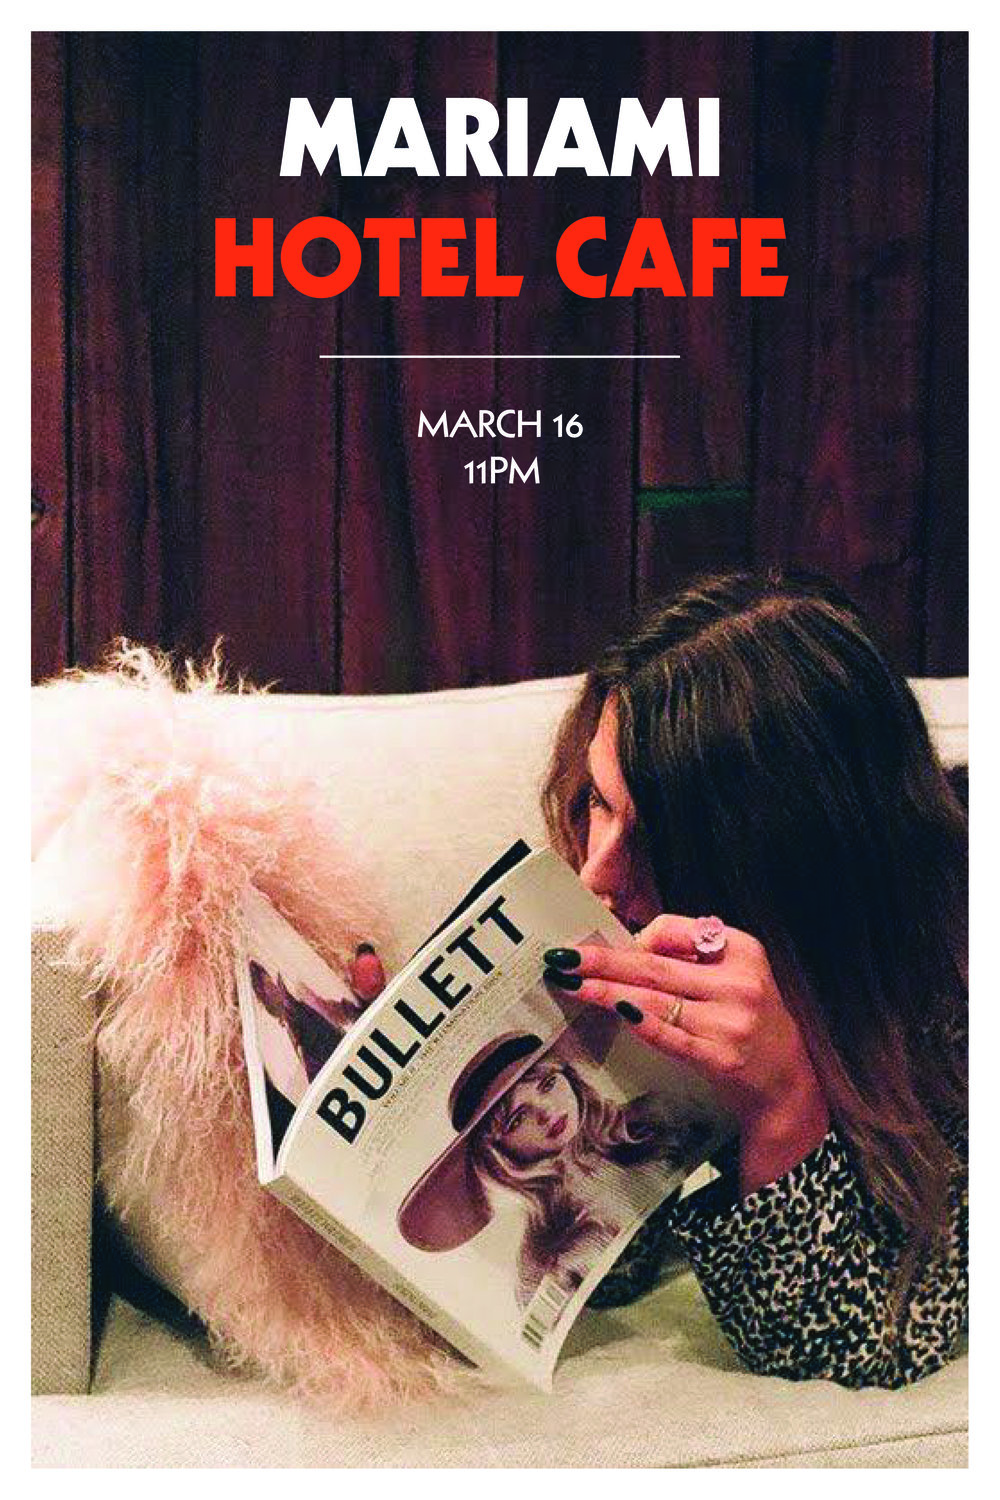 SEE MARIAMI LIVE AT HOTEL CAFE ON MARCH 16 - TIX HERE